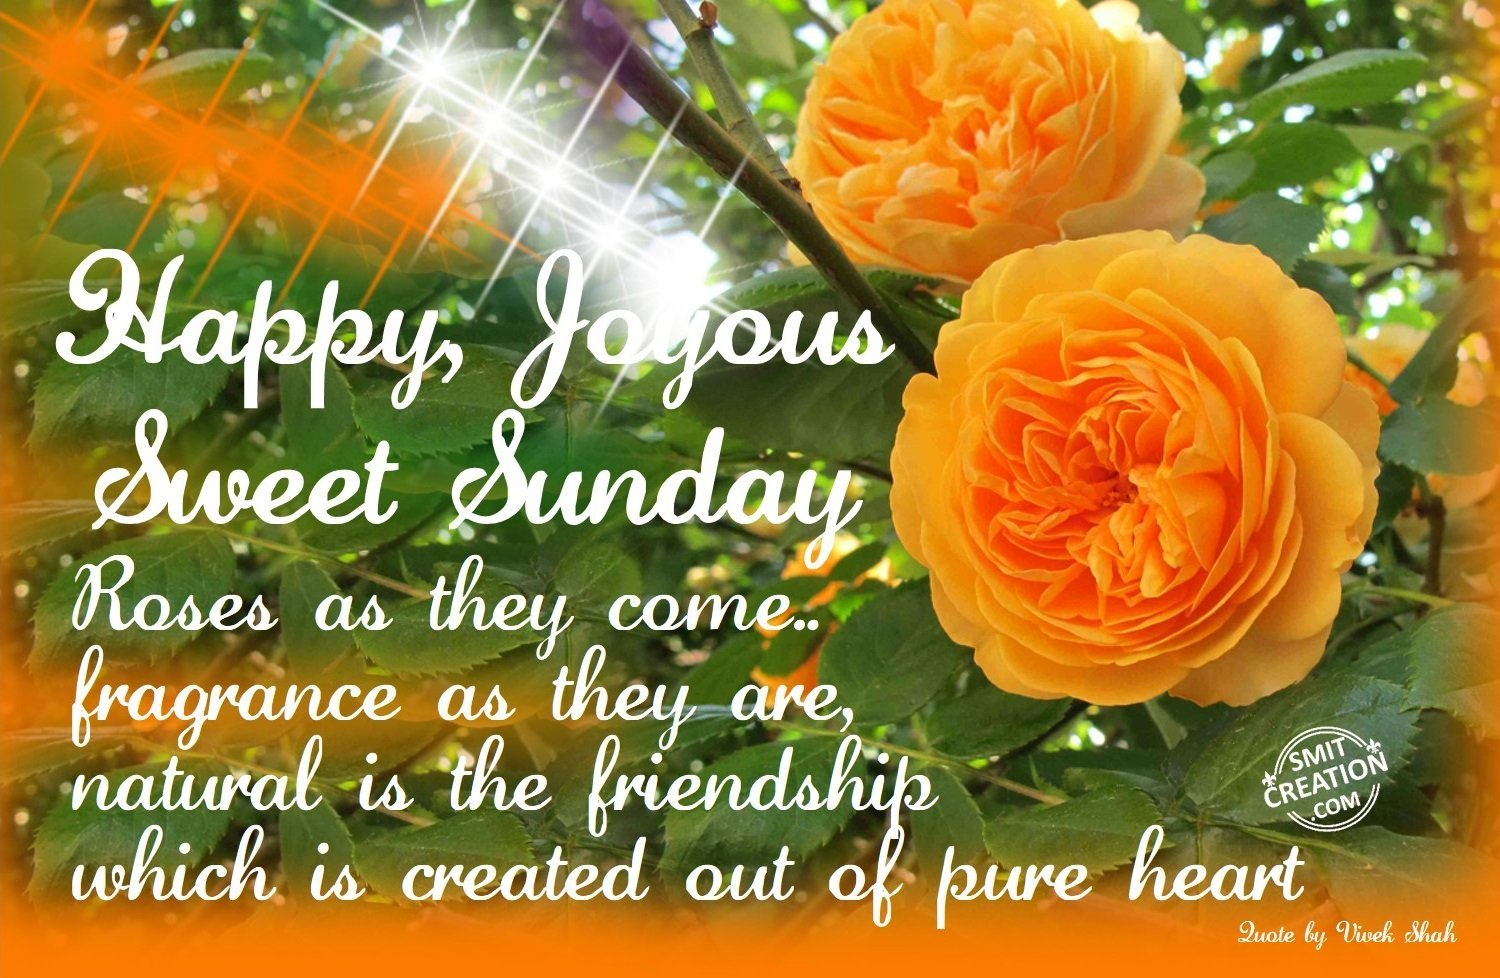 Happy Joyous Sweet Sunday - SmitCreation.com